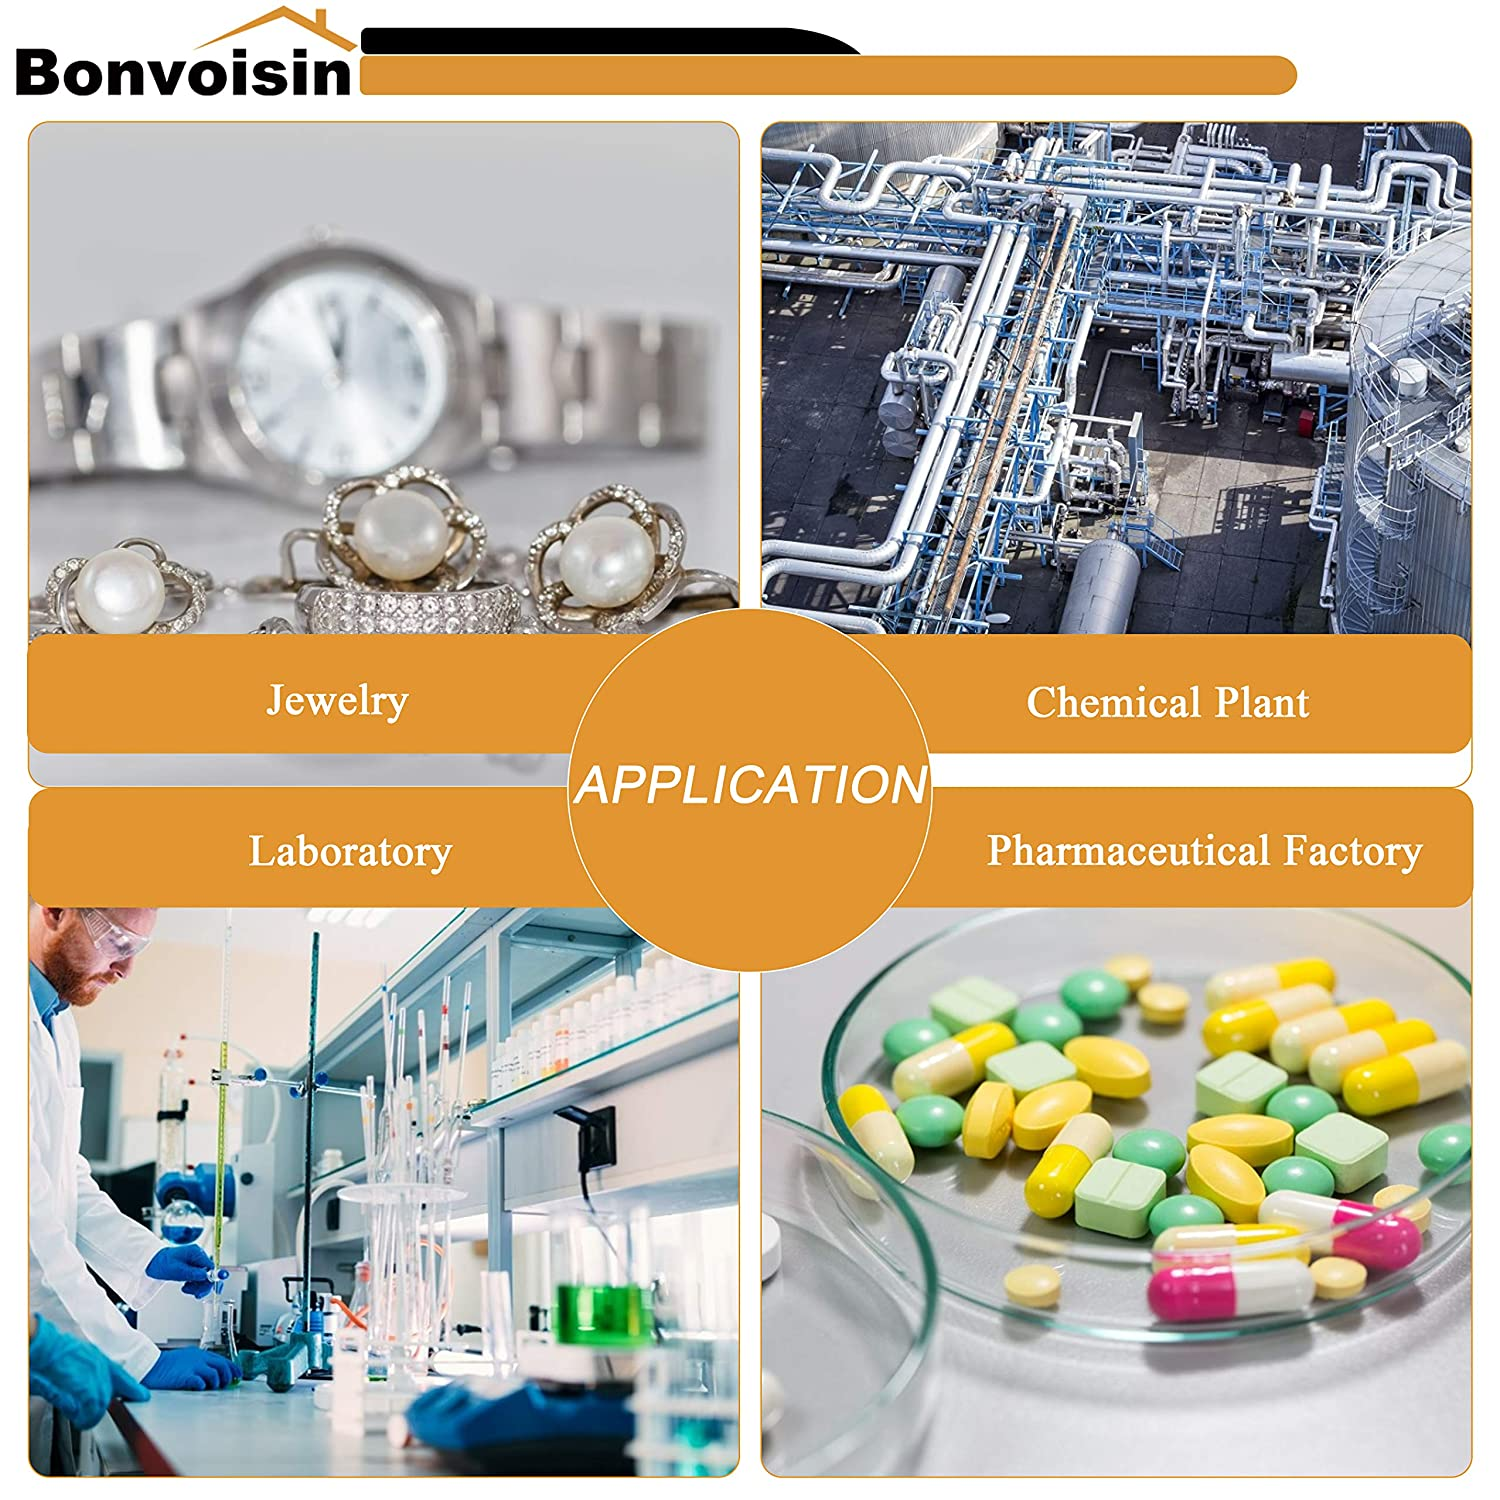 300g, 0.001g Bonvoisin Analytical Balance 300gx1mg Precision Lab Scale Digital Electronic Scale 1mg Laboratory Analytical Scale LCD Display Scientific Scale with Windshield